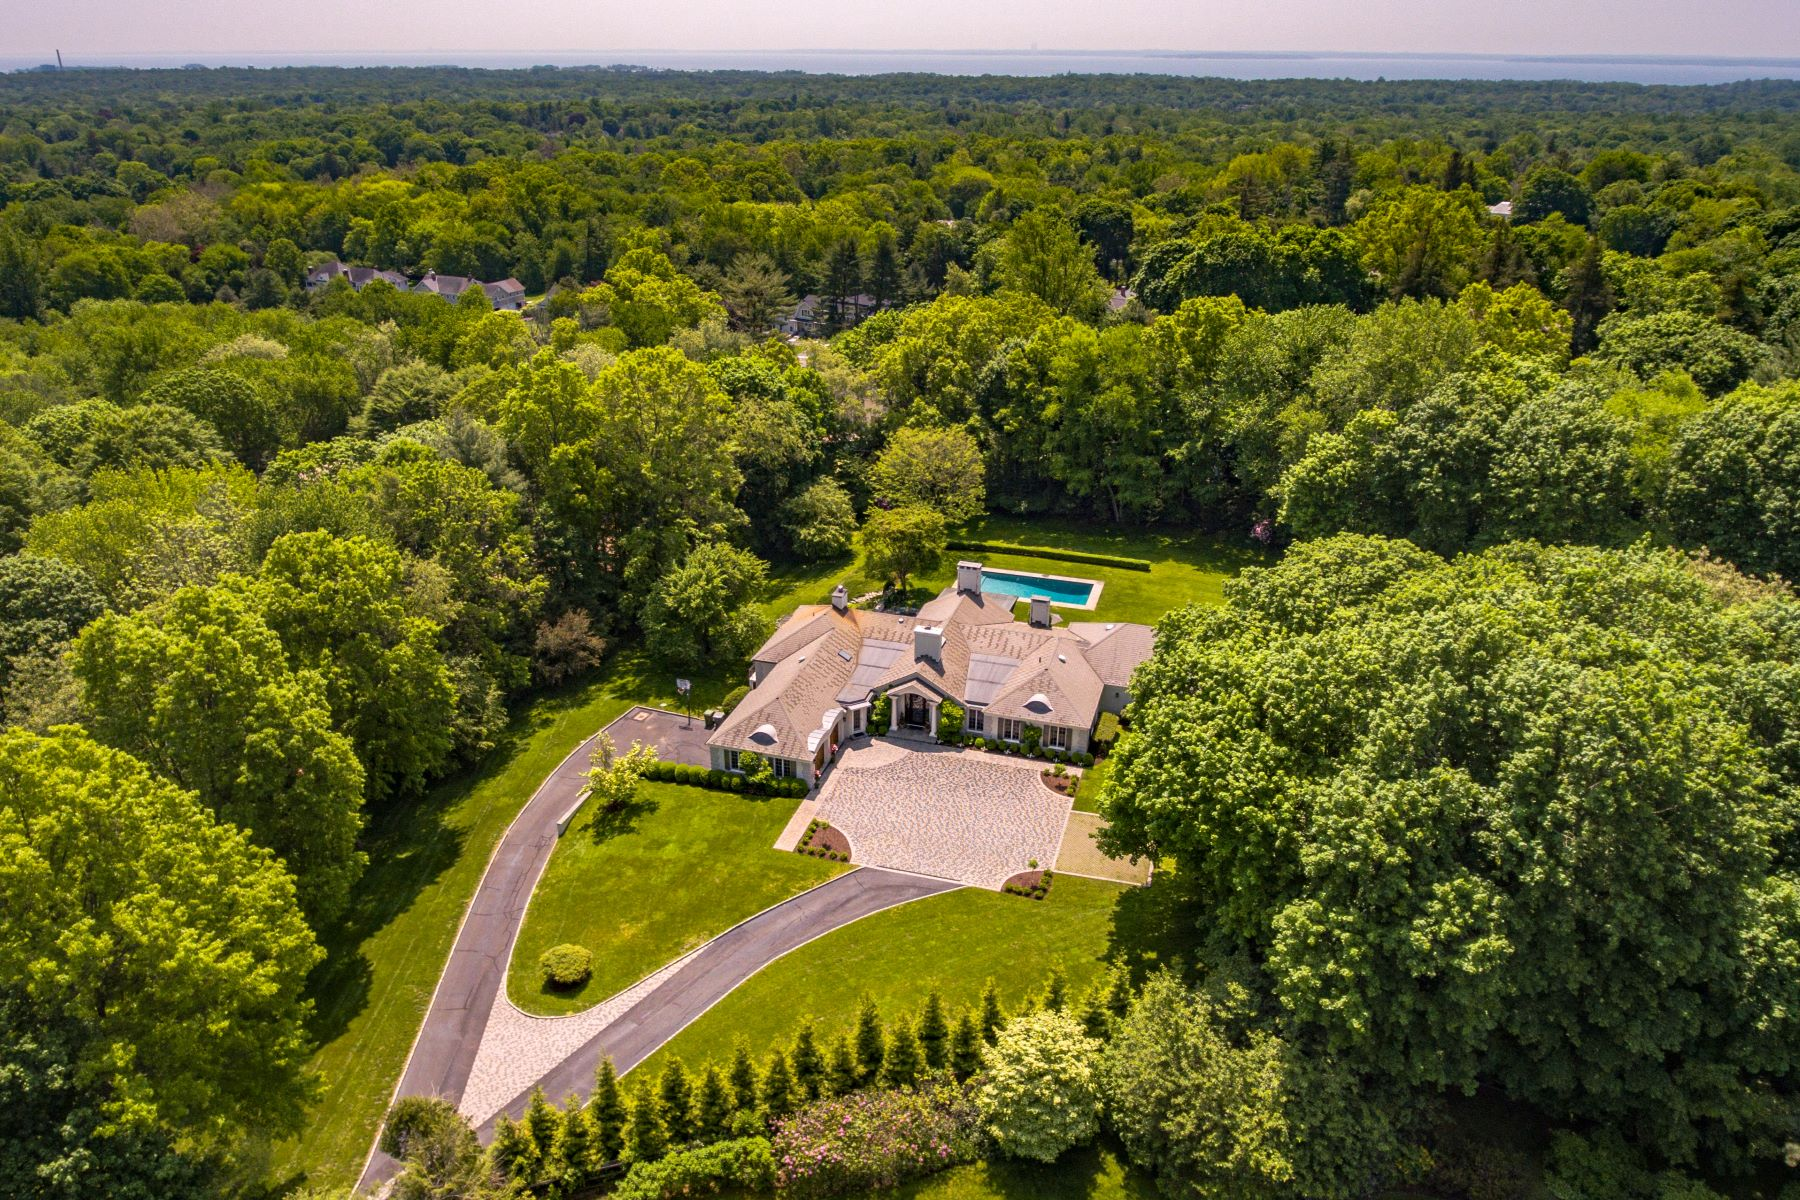 Single Family Home for Sale at 72 Peach Hill Road 72 Peach Hill Road Darien, Connecticut 06820 United States